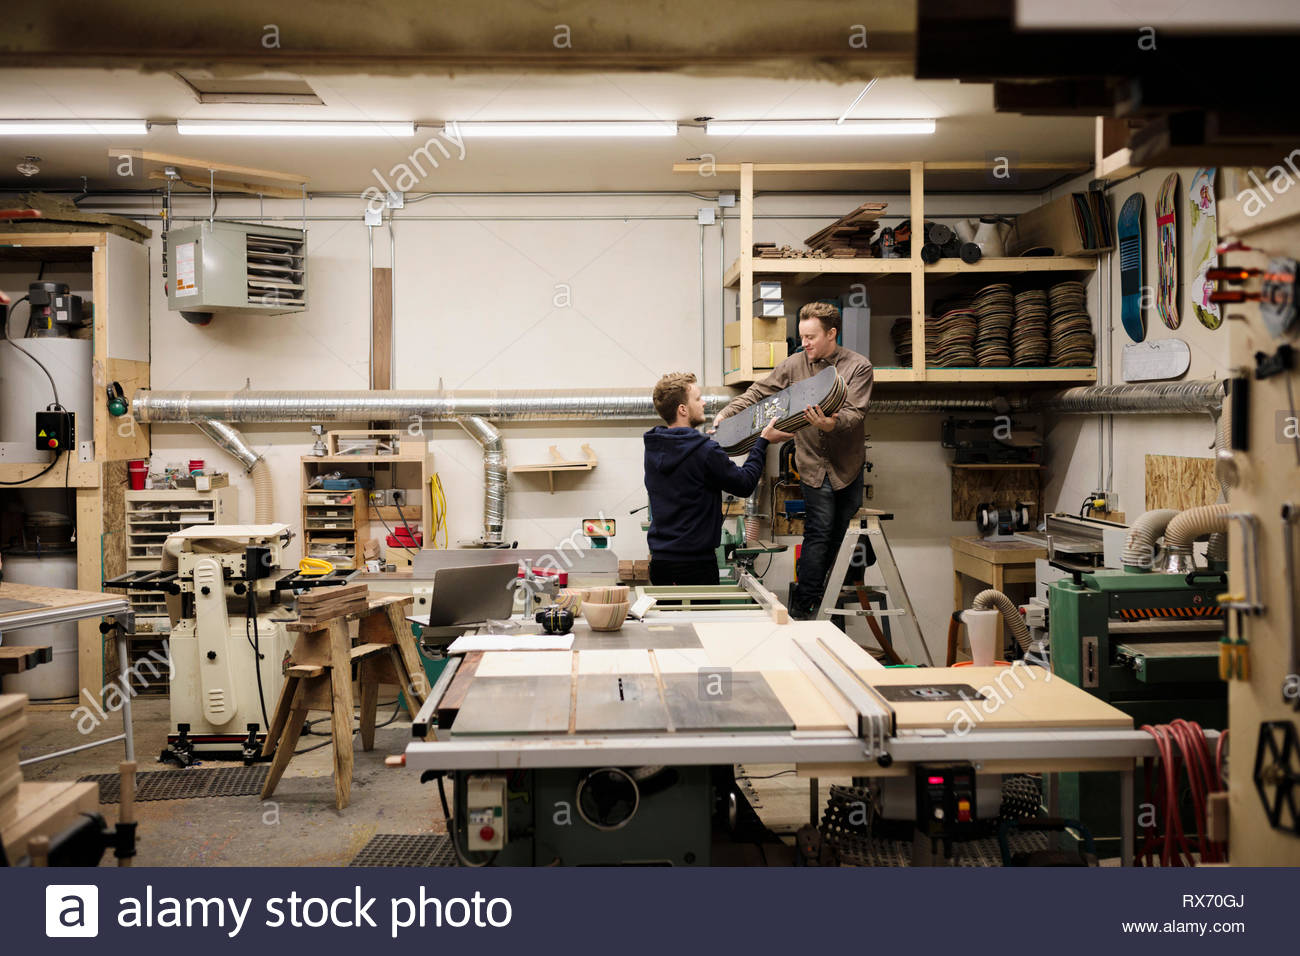 Creative artists using recycled skateboards in woodworking workshop - Stock Image